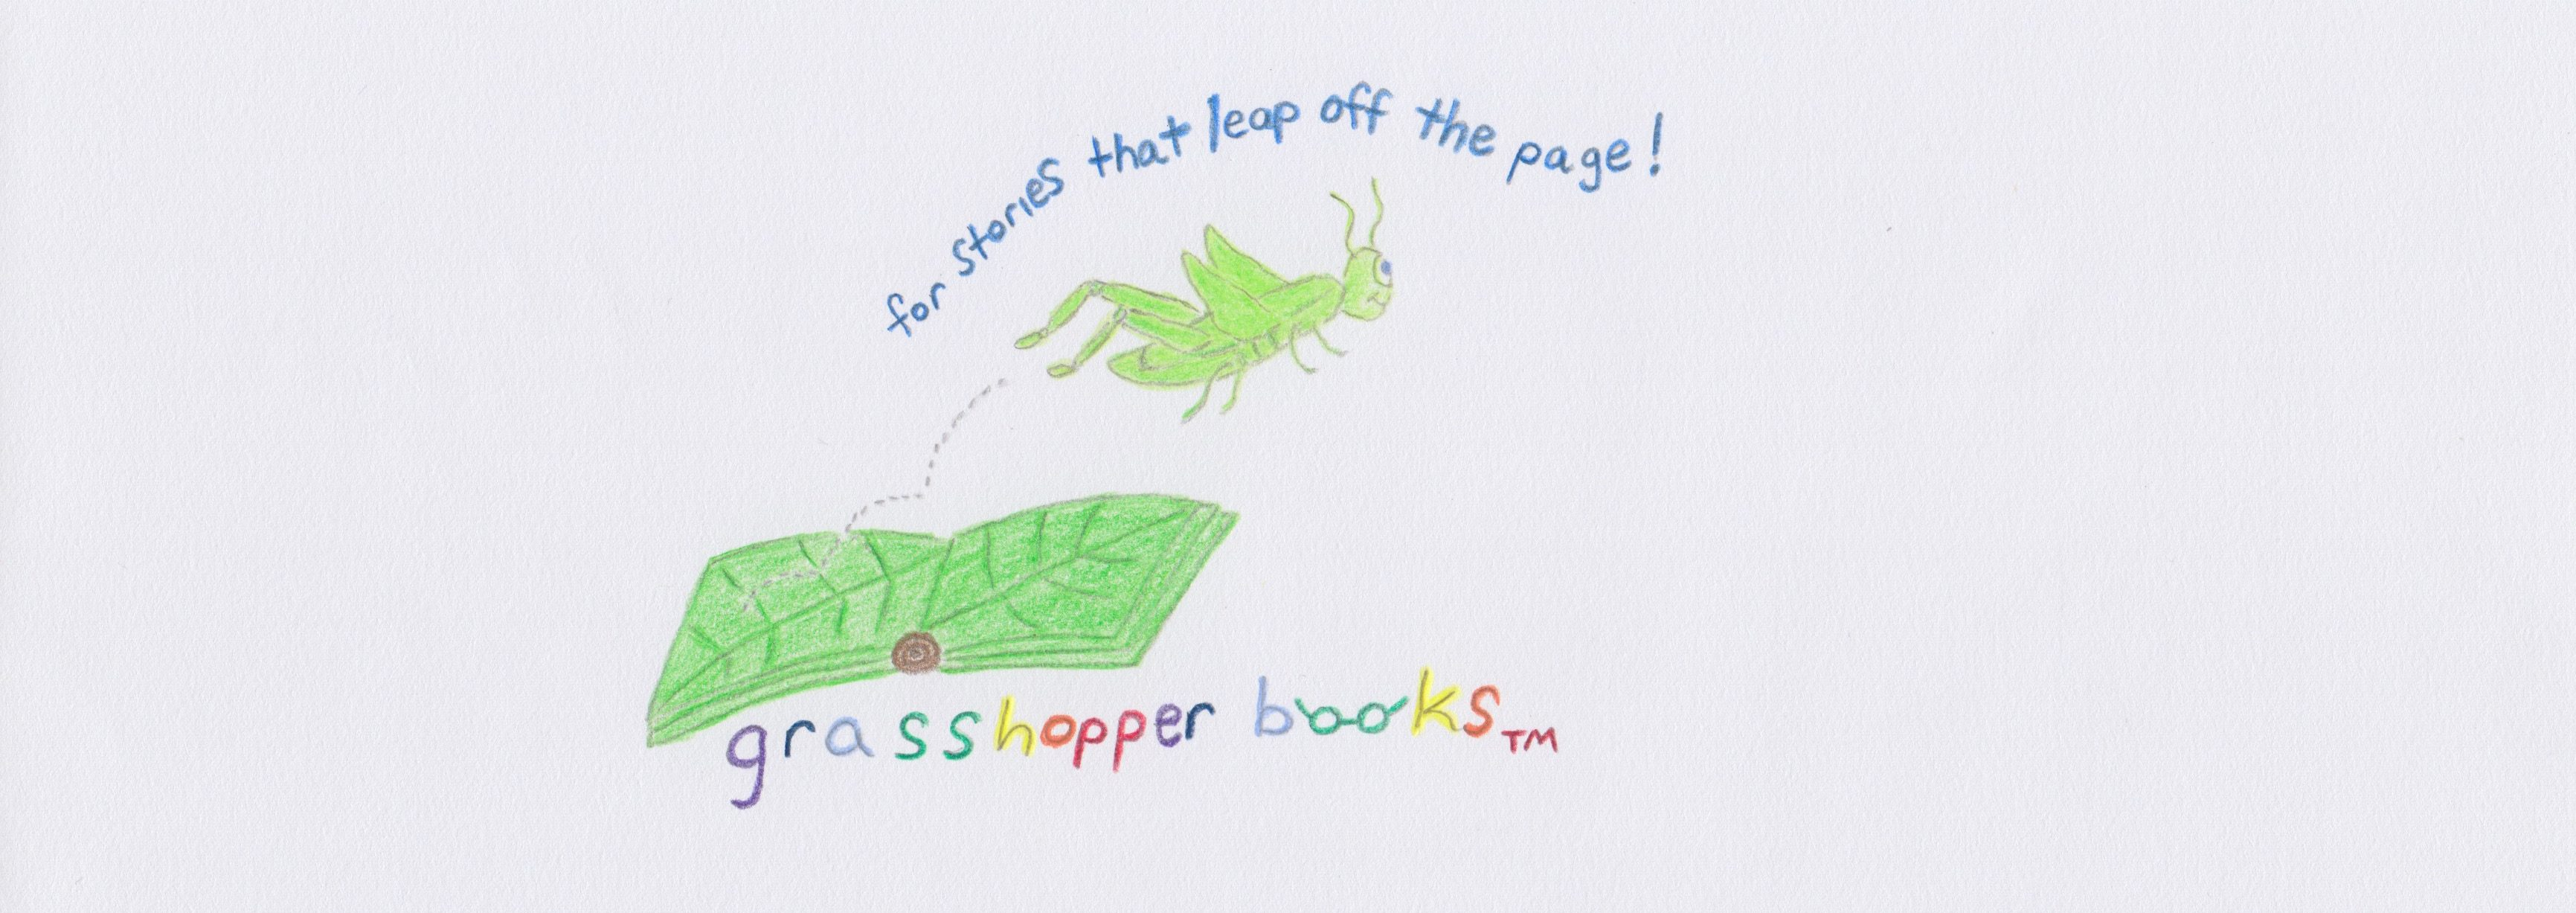 Grasshopper Books